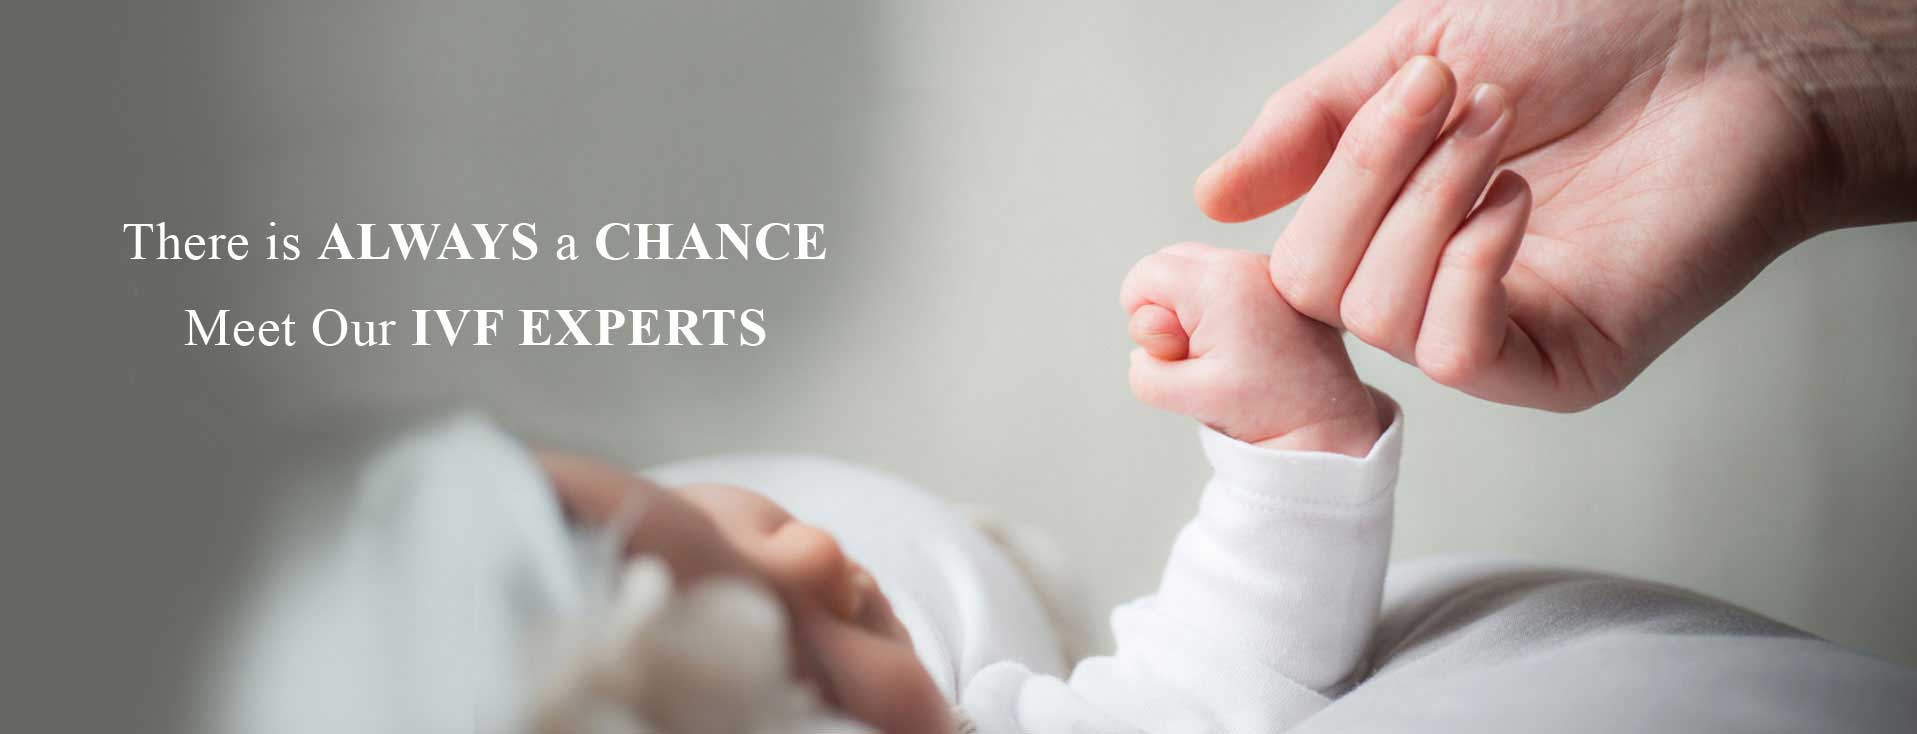 There is always a chance meet our ivf experts